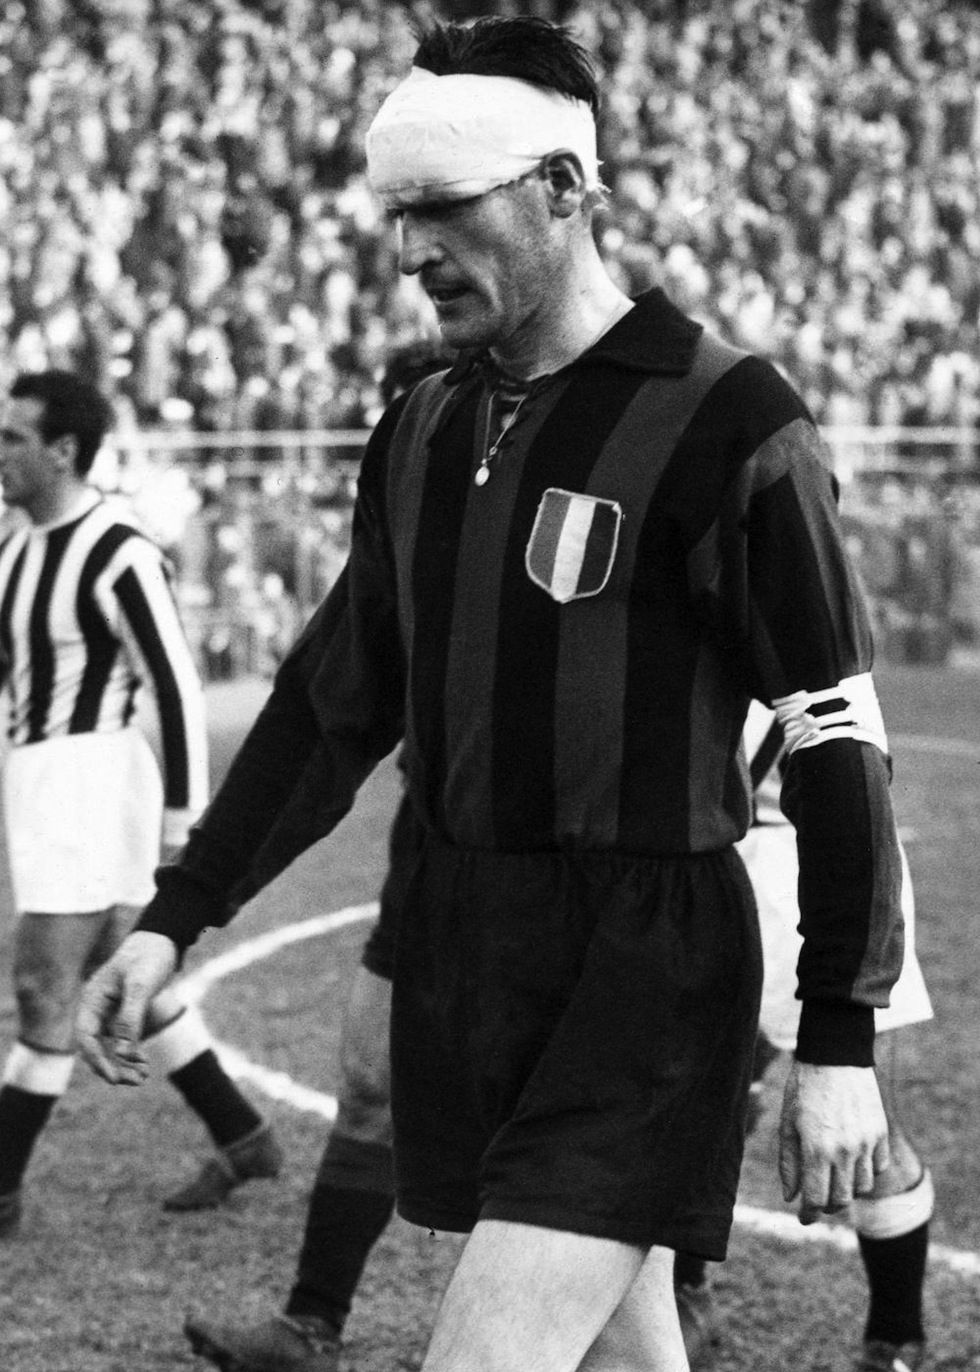 Nils Liedholm AC Milan 1949 1961 359 apps 81 goals in the 50s